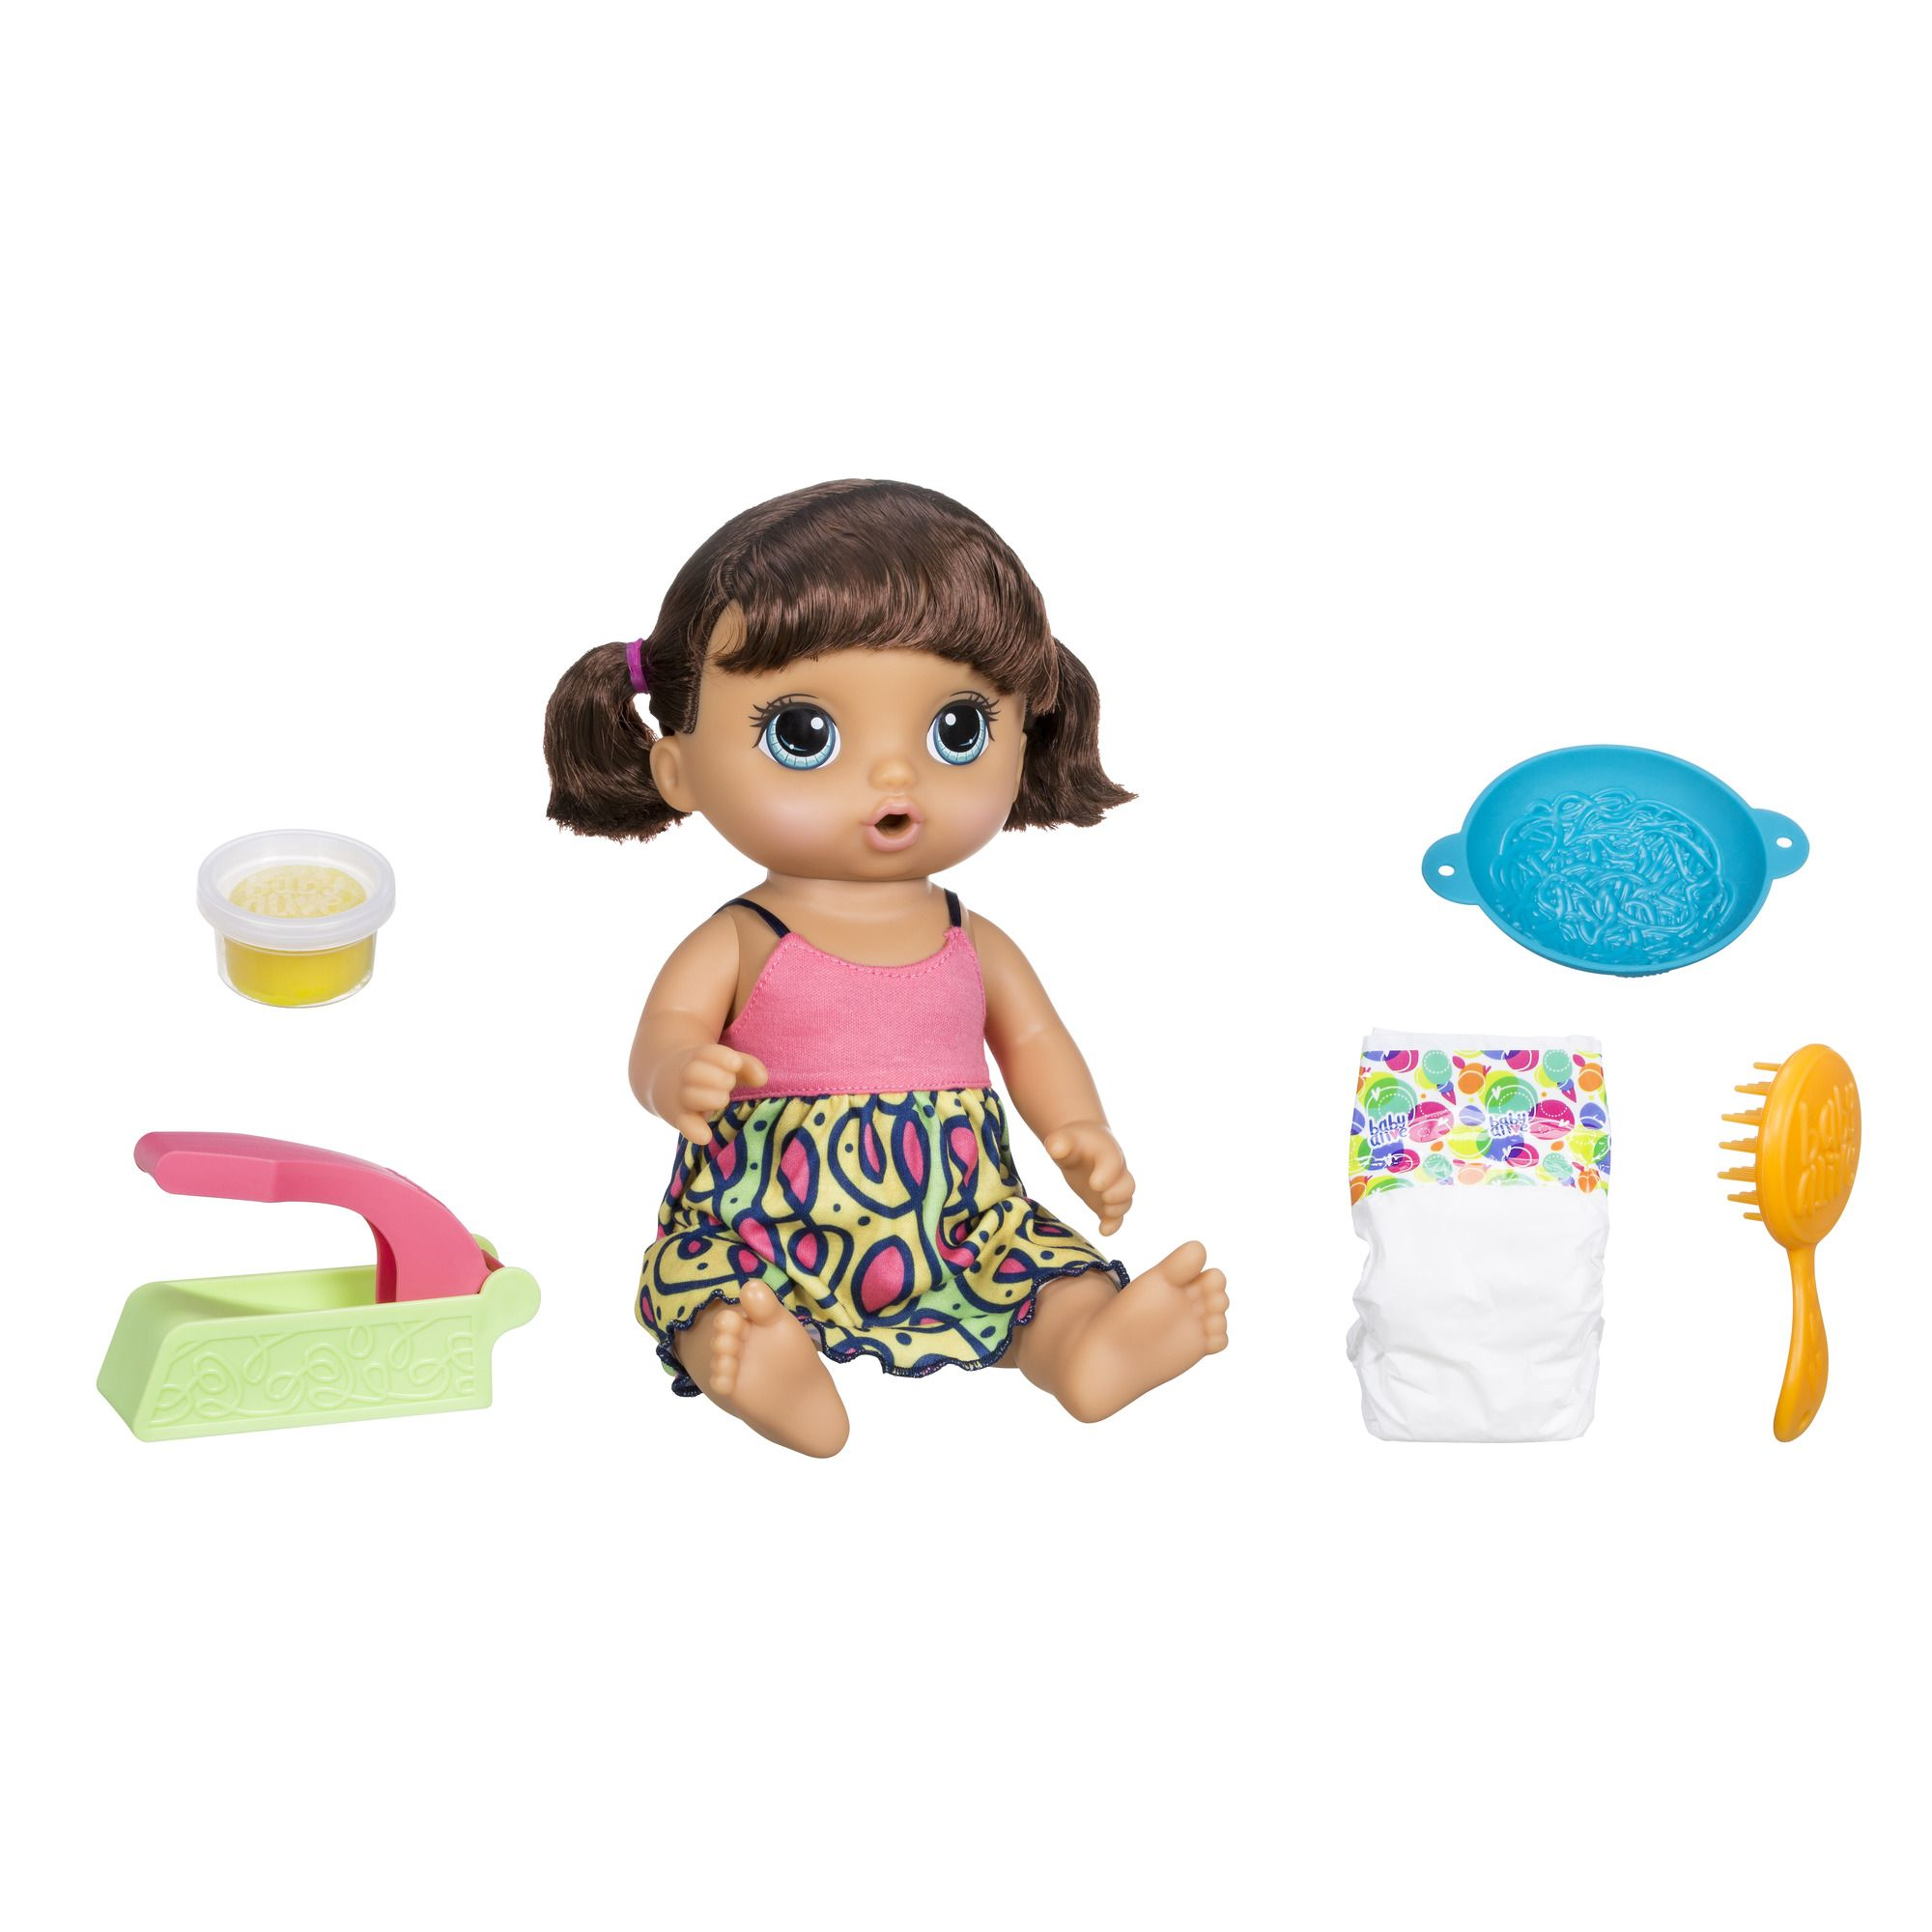 Baby Alive Super Snacks Snackin Noodles Baby Brunette Multi Color Baby Alive Magical Scoops Realistic Baby Dolls Baby Alive Dolls